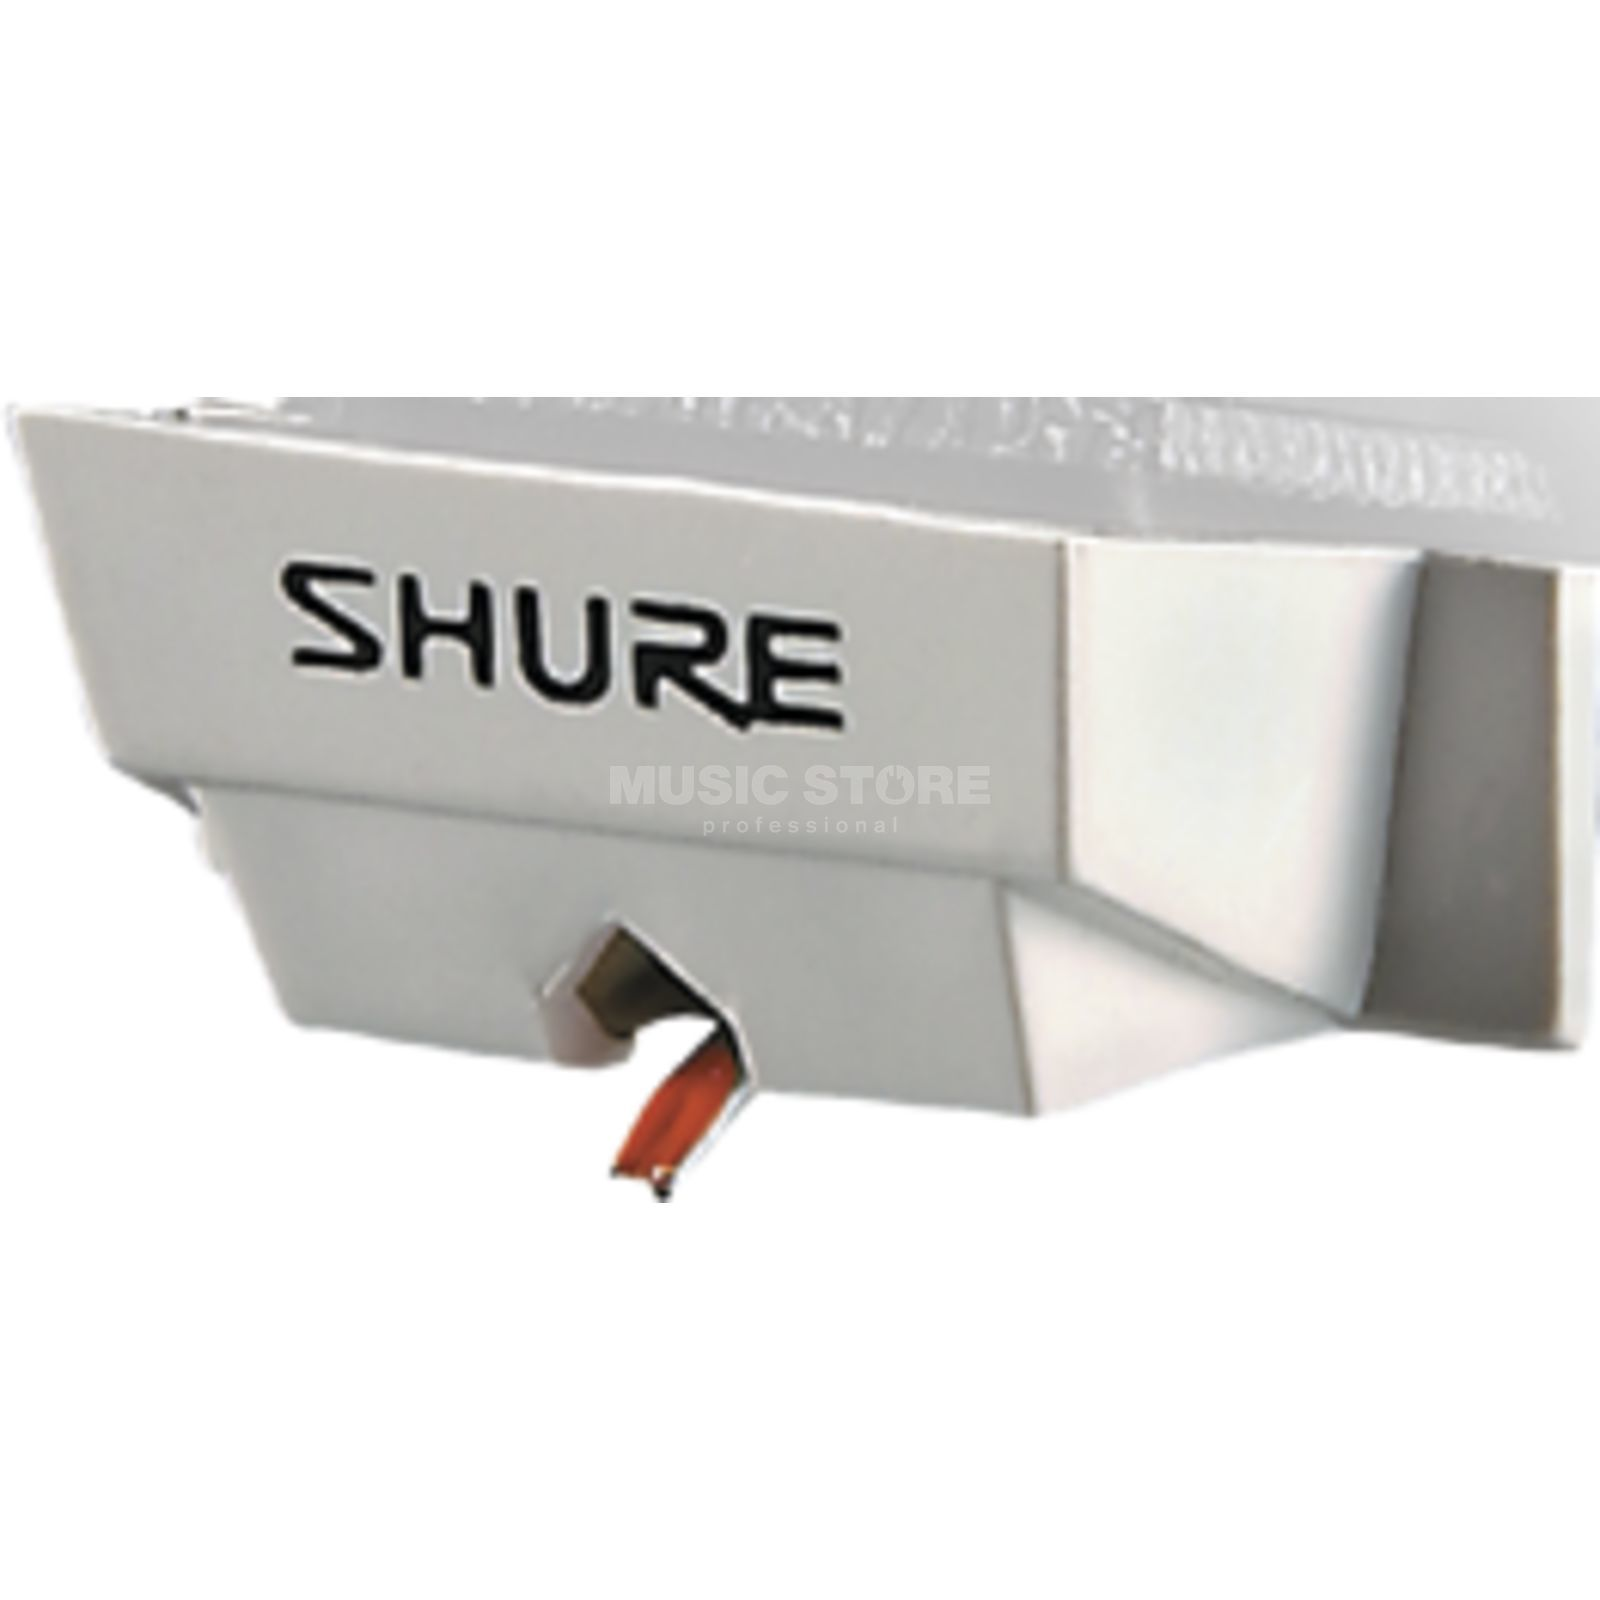 Shure N35X / Replacament Needle  for M35X Produktbillede